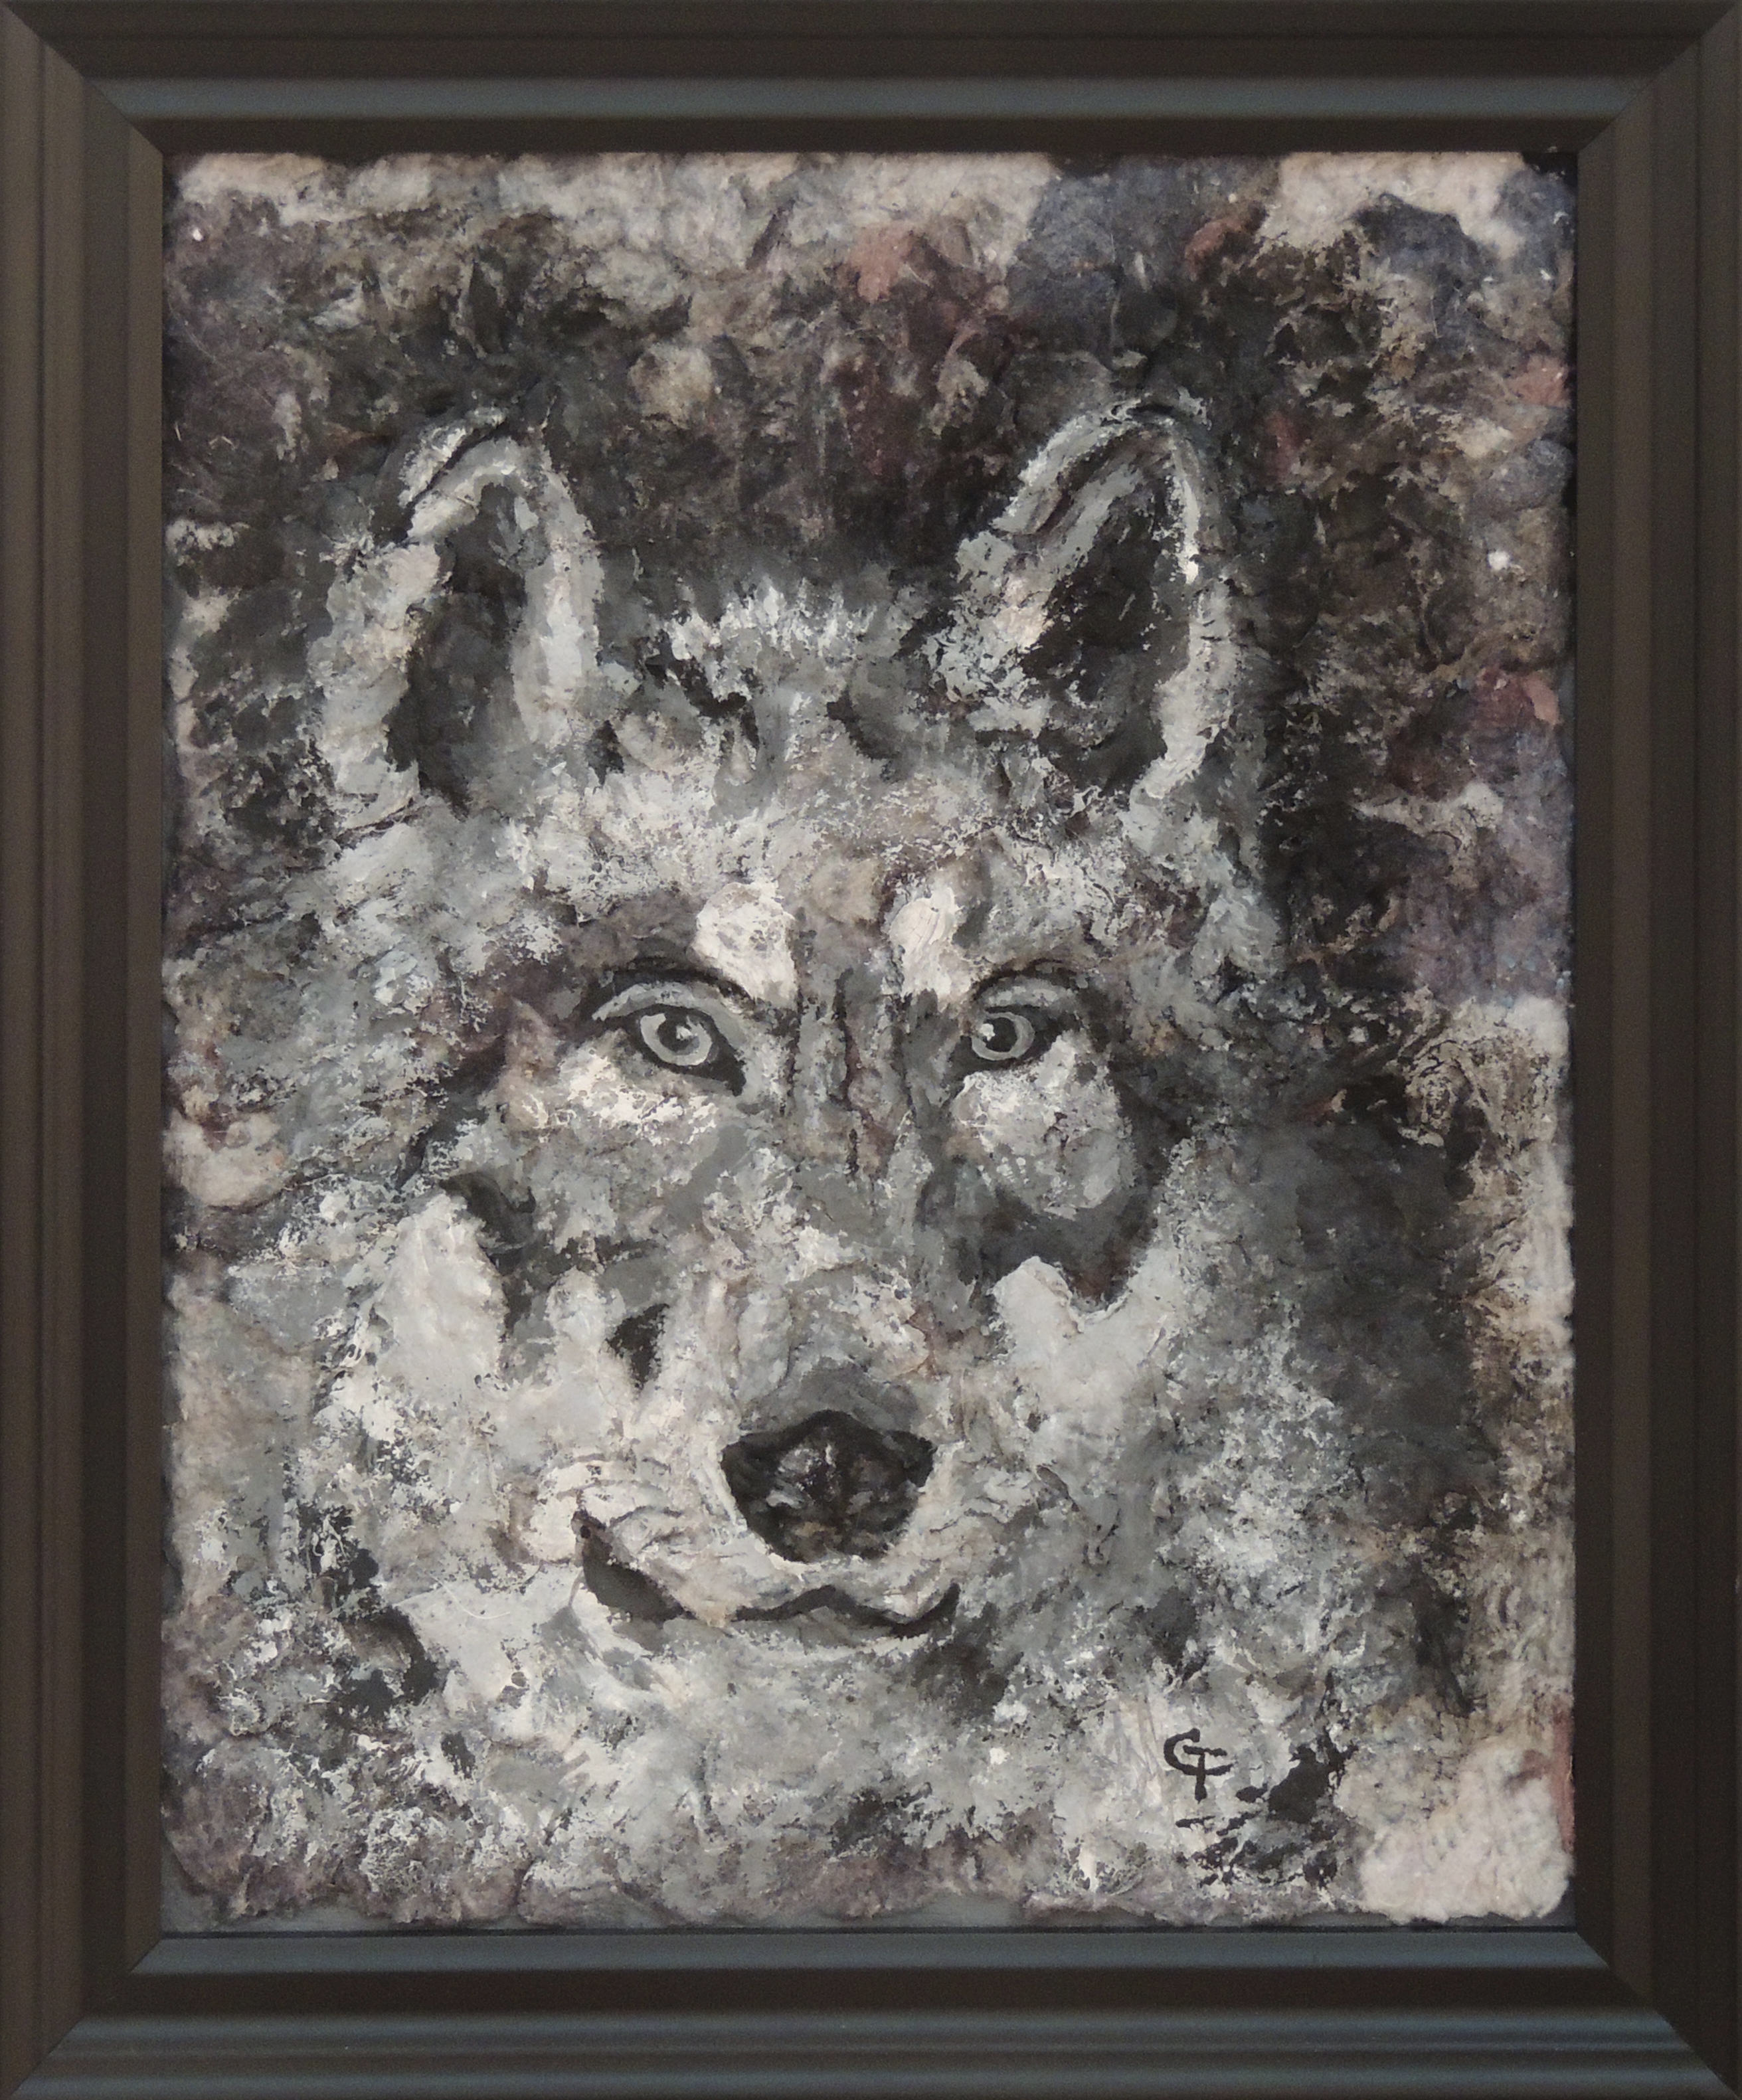 Cooley F. Turner | WOLF IN SNOW | Watercolor on Dryer Lint